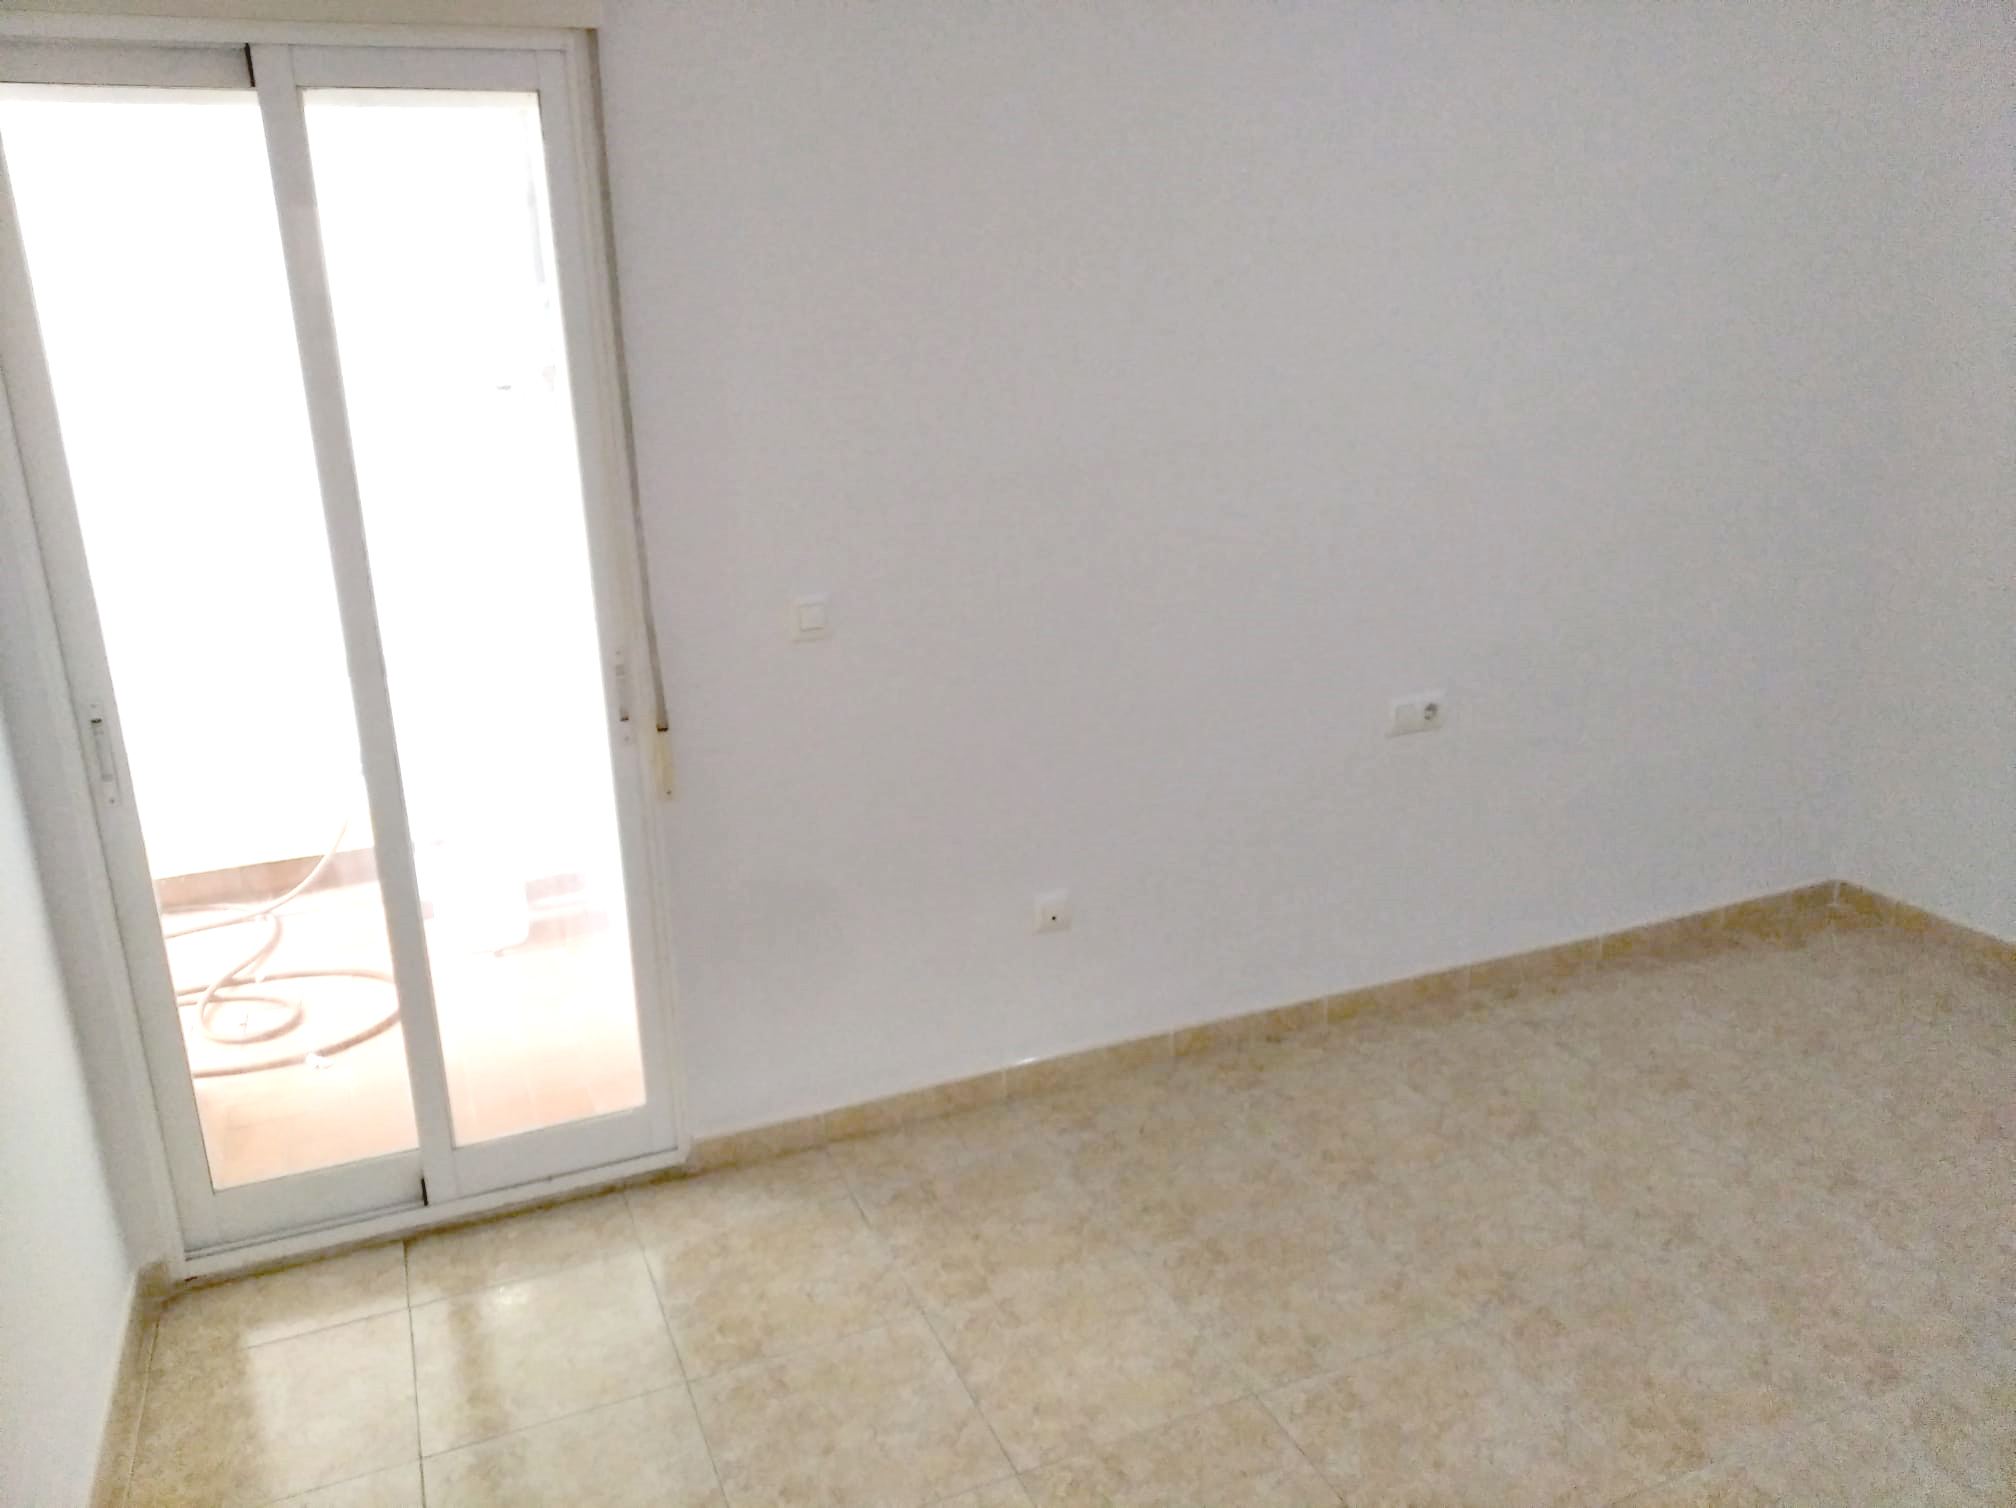 Fotonummer 14: Apartment /Dachbodenwohnung in Miete in Denia, Zone Casco urbano, Sector Paris. Ref. 5-36-14890 (14890)